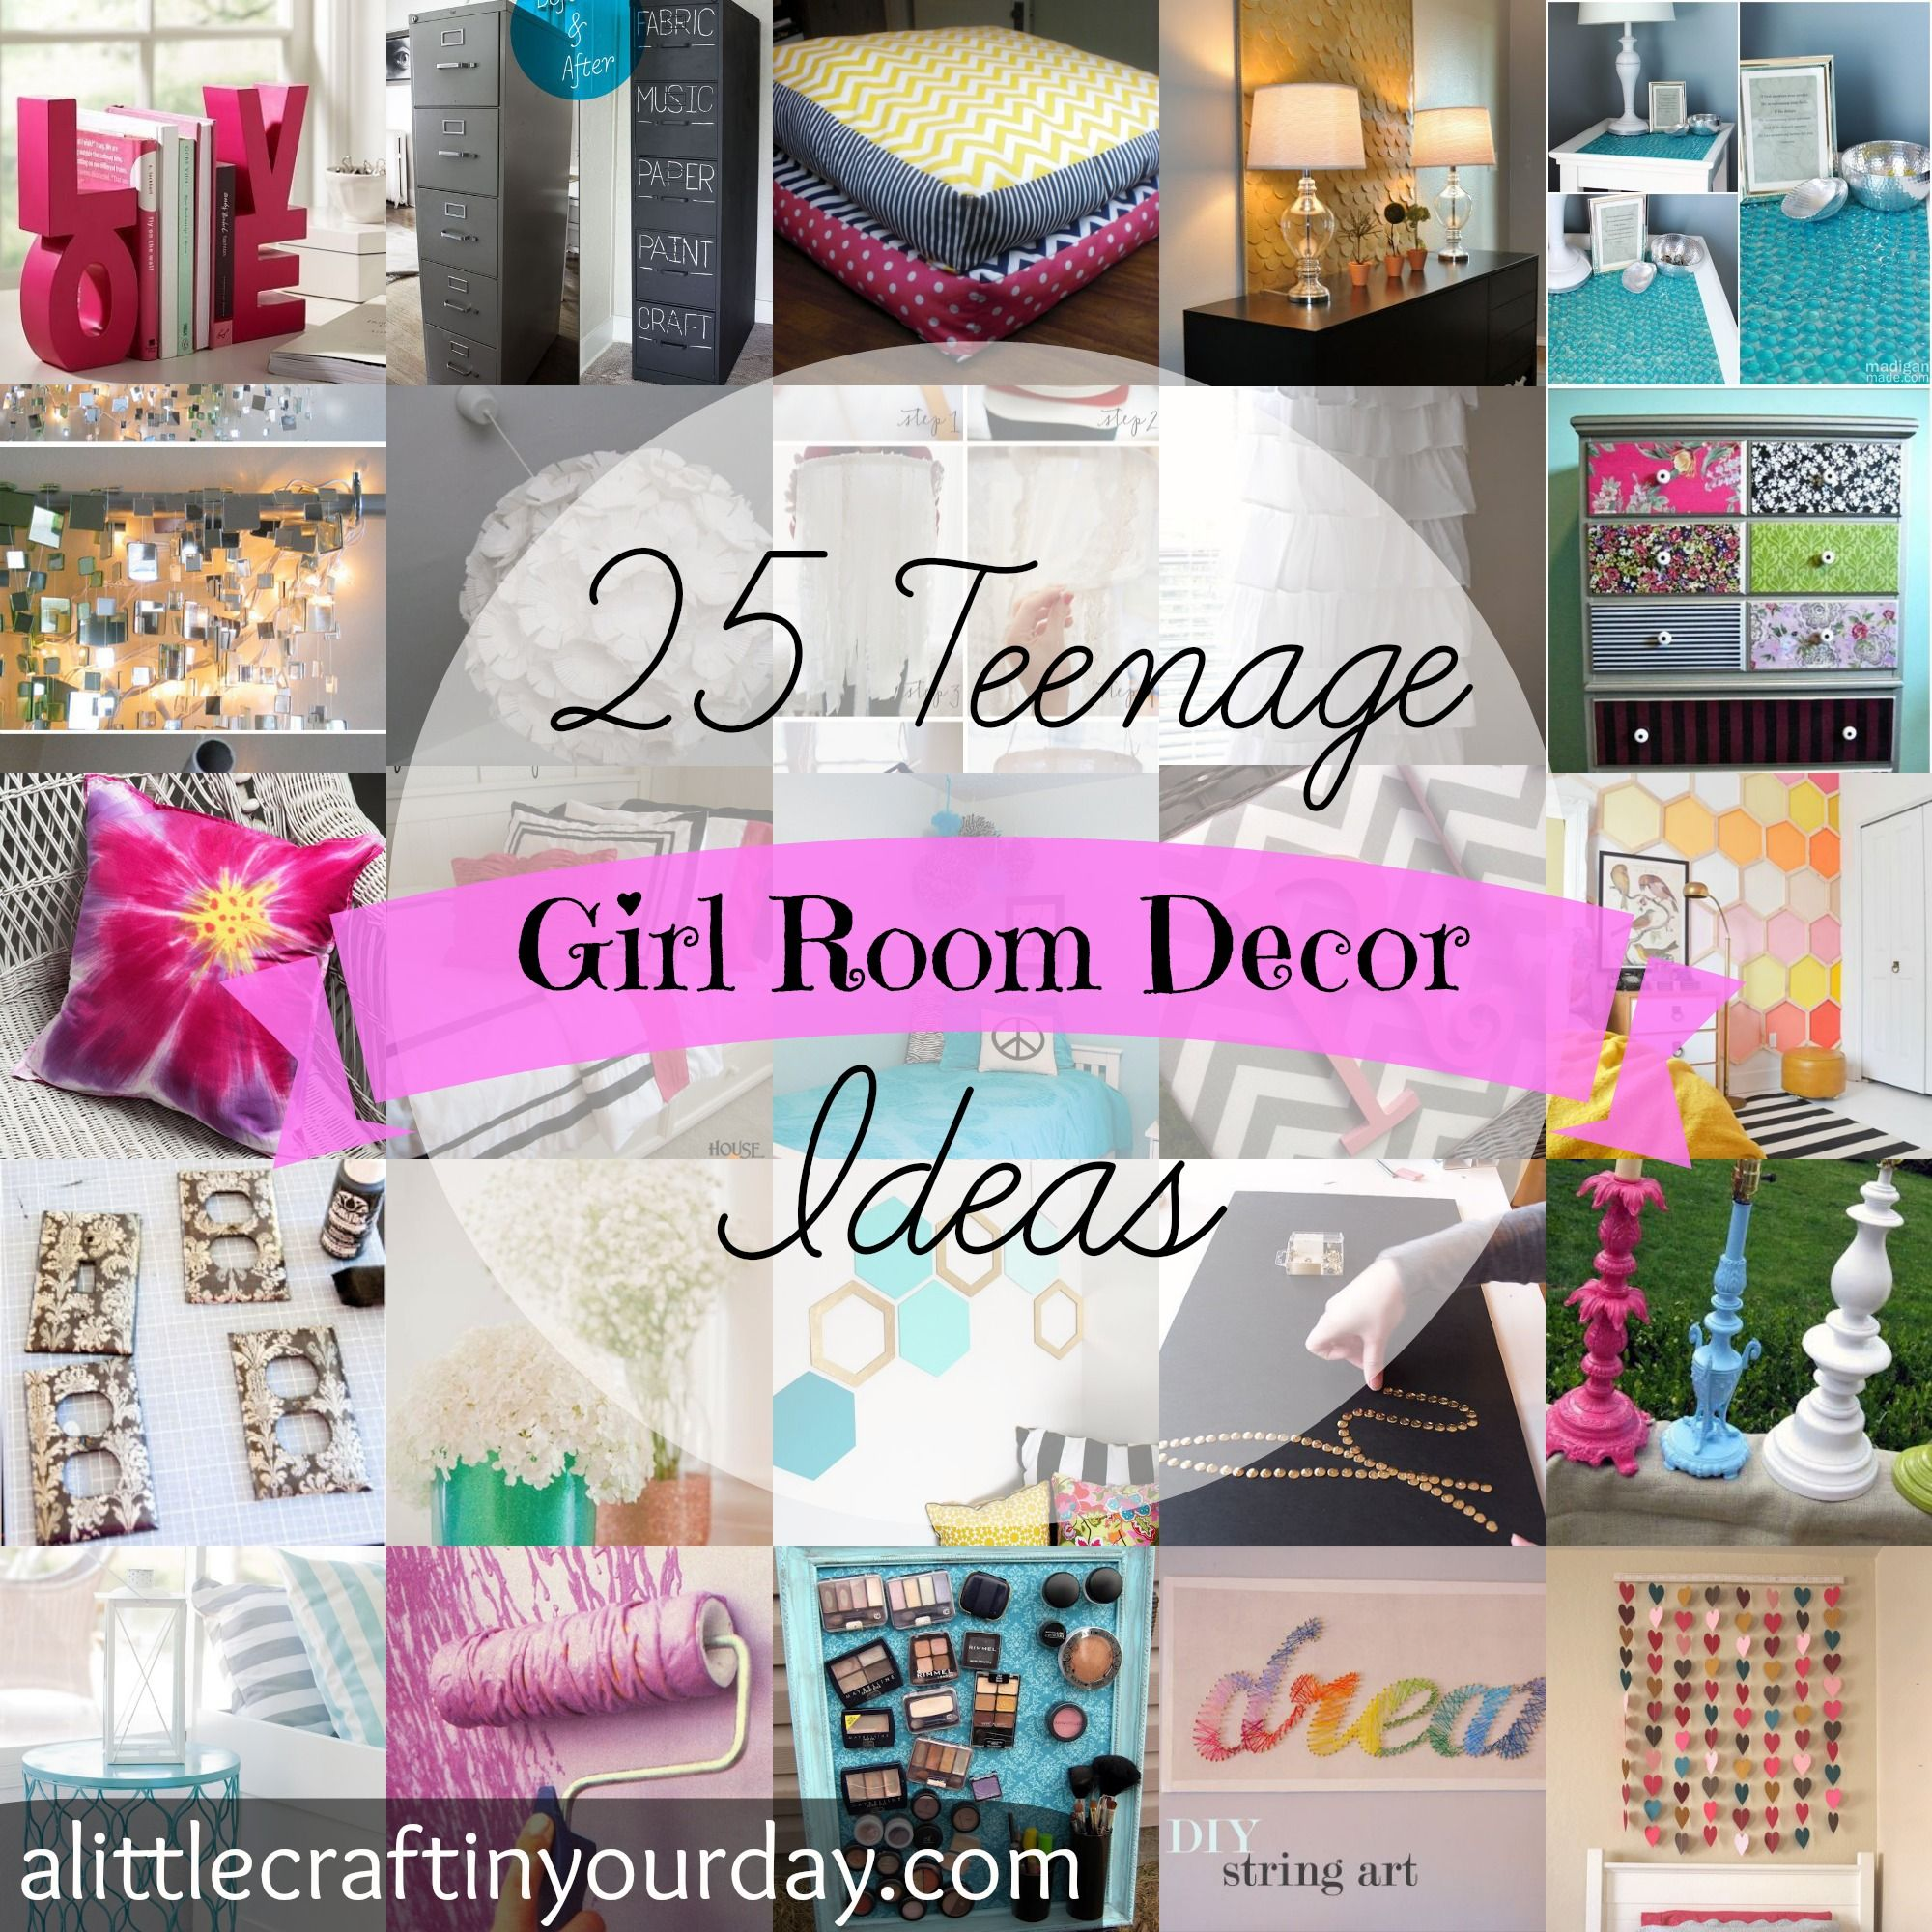 14 DIY Halloween Costumes. Teenage Girl BedroomsTeenage ...